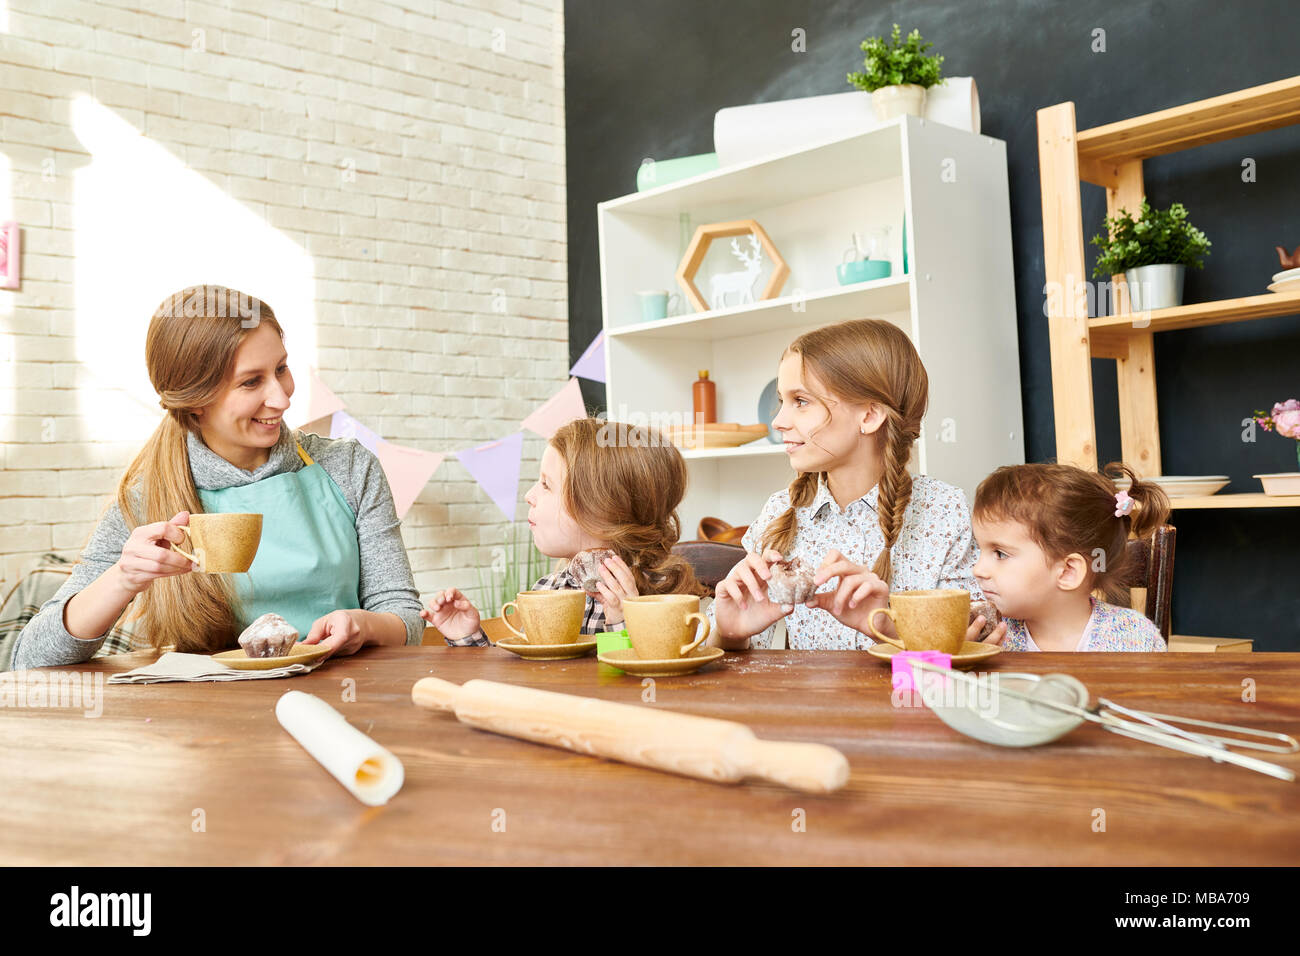 Enjoying Sunny Day at Home - Stock Image